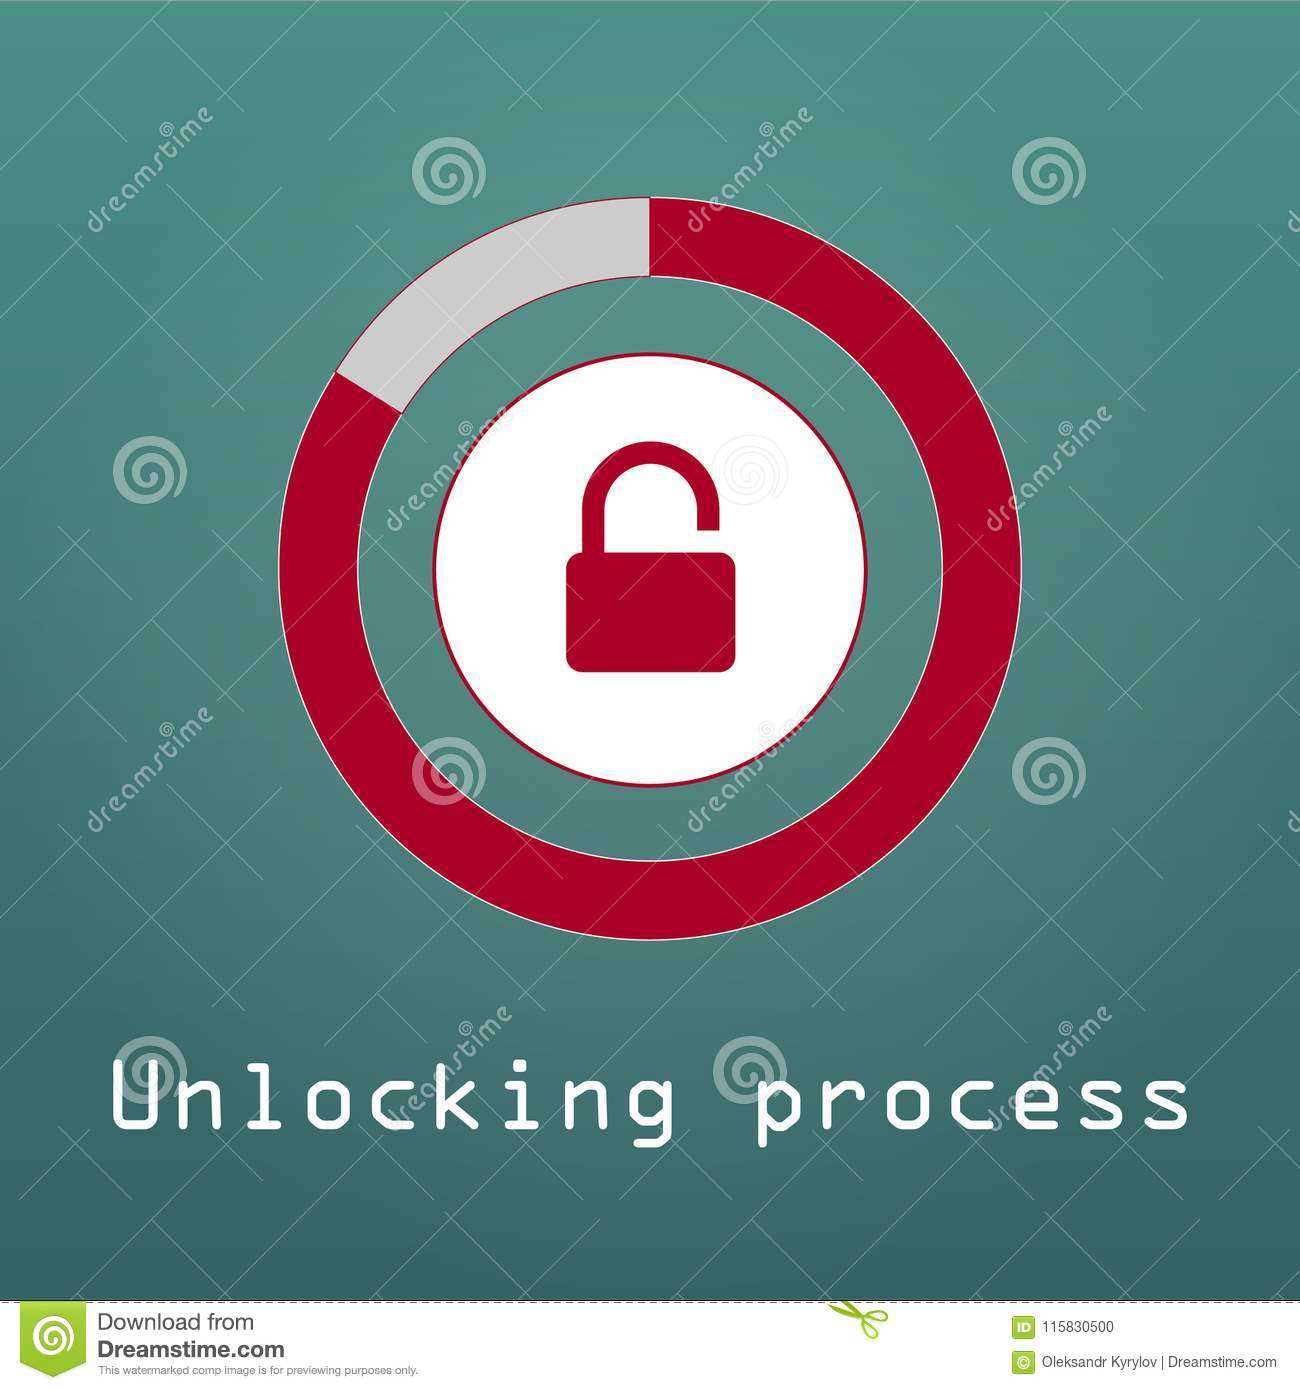 Unlocking Process Of Personal Data Security Decryption, Login